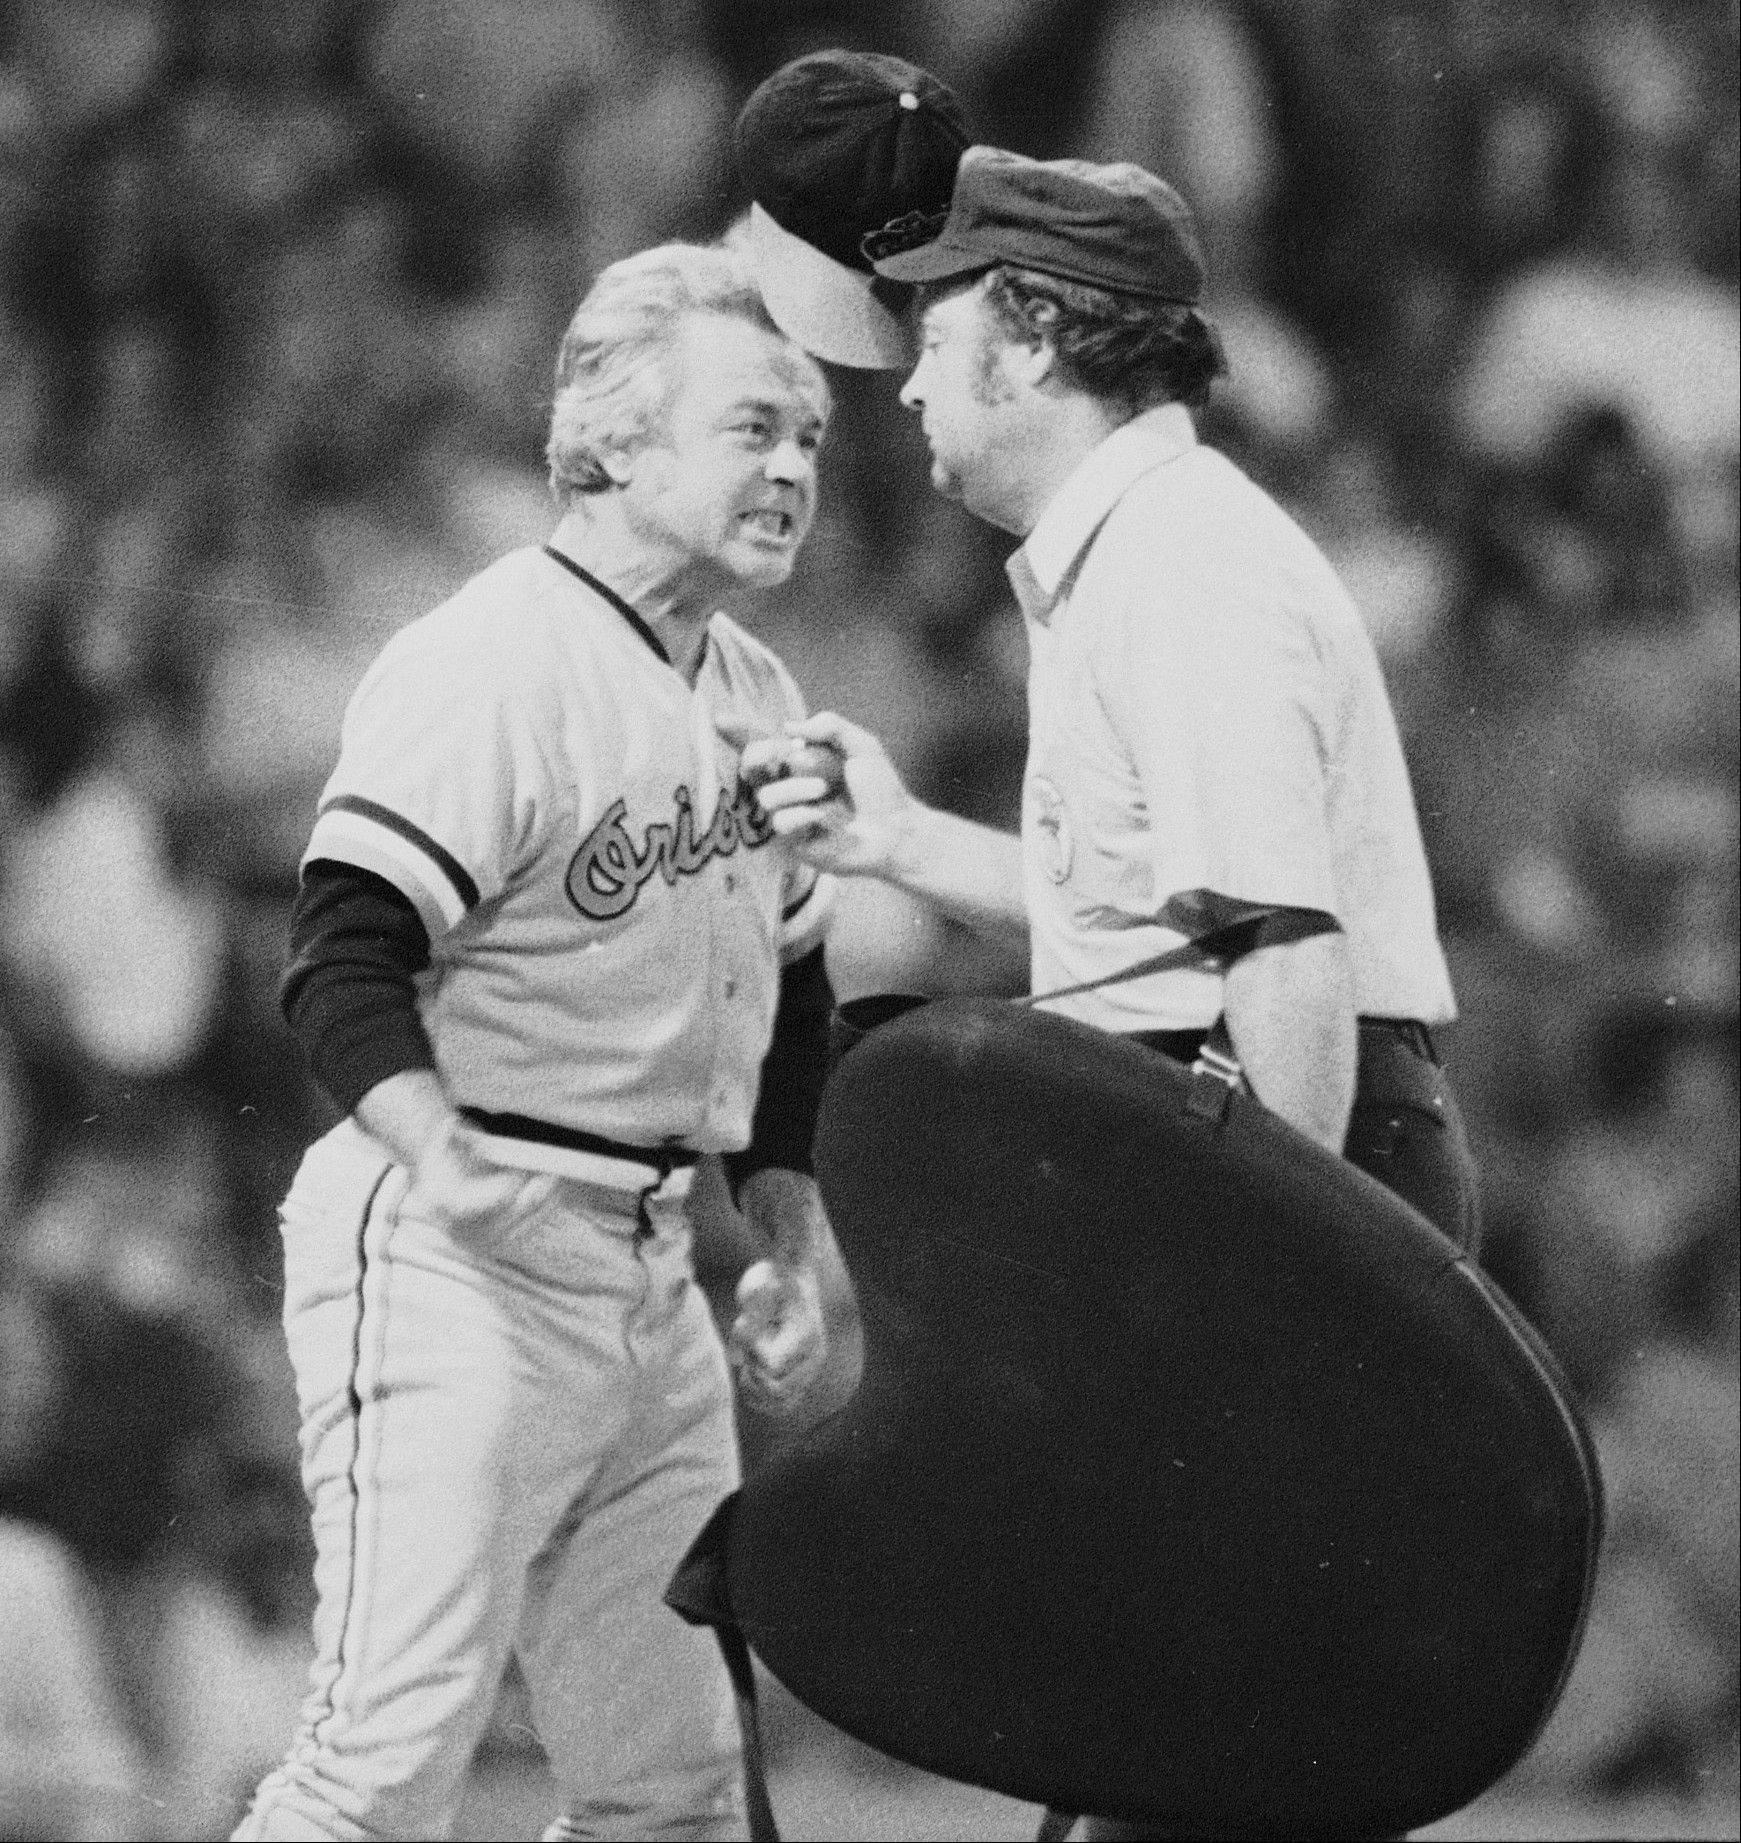 "In this July 13, 1974 file photo, Baltimore Orioles manager Earl Weaver literally ""flips his lid"" as he protests a call by home plate umpire Marty Springstead during a baseball game against the Chicago White Sox in Chicago. Weaver, the fiery Hall of Fame manager who won 1,480 games with the Baltimore Orioles, has died, the team announced Saturday, Jan. 19, 2013. He was 82."